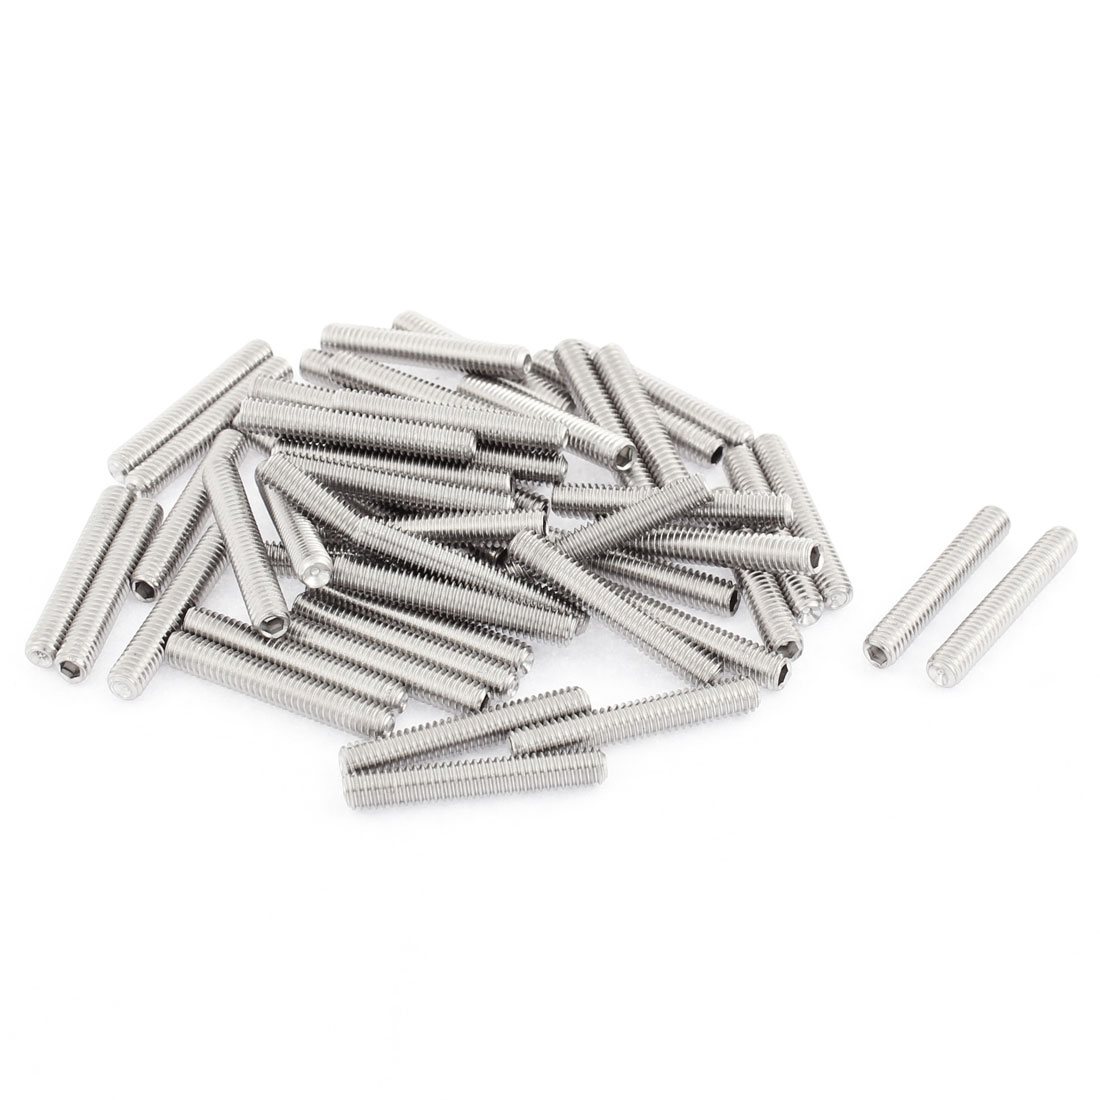 M4x25mm Stainless Steel Hex Socket Set Cap Point Grub Screws Silver Tone 50pcs